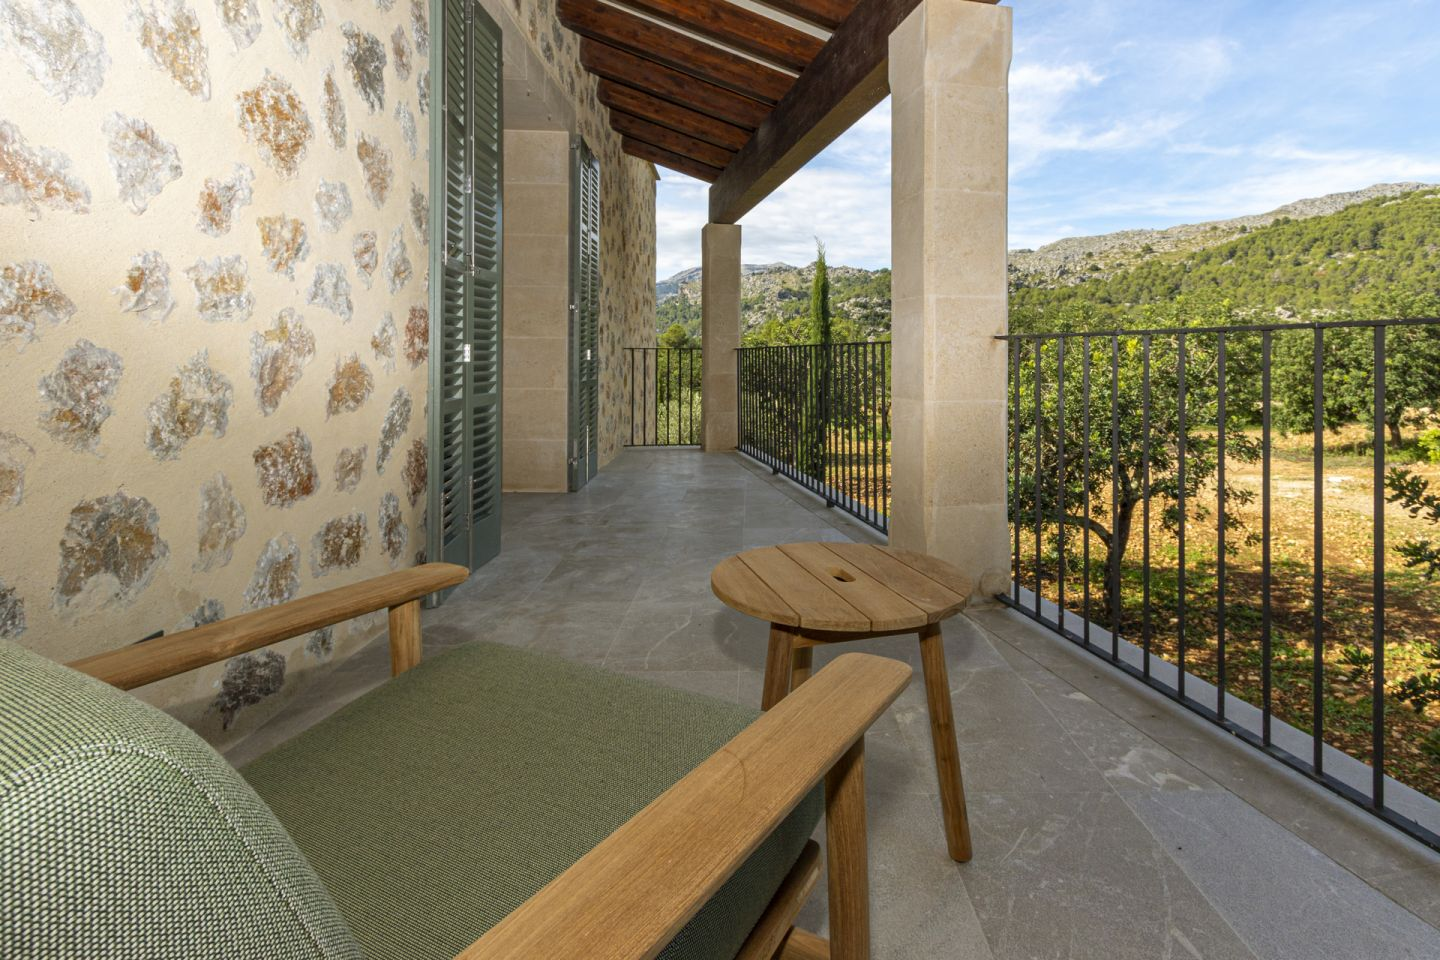 5 Bed Countryside House for sale in POLLENSA 15